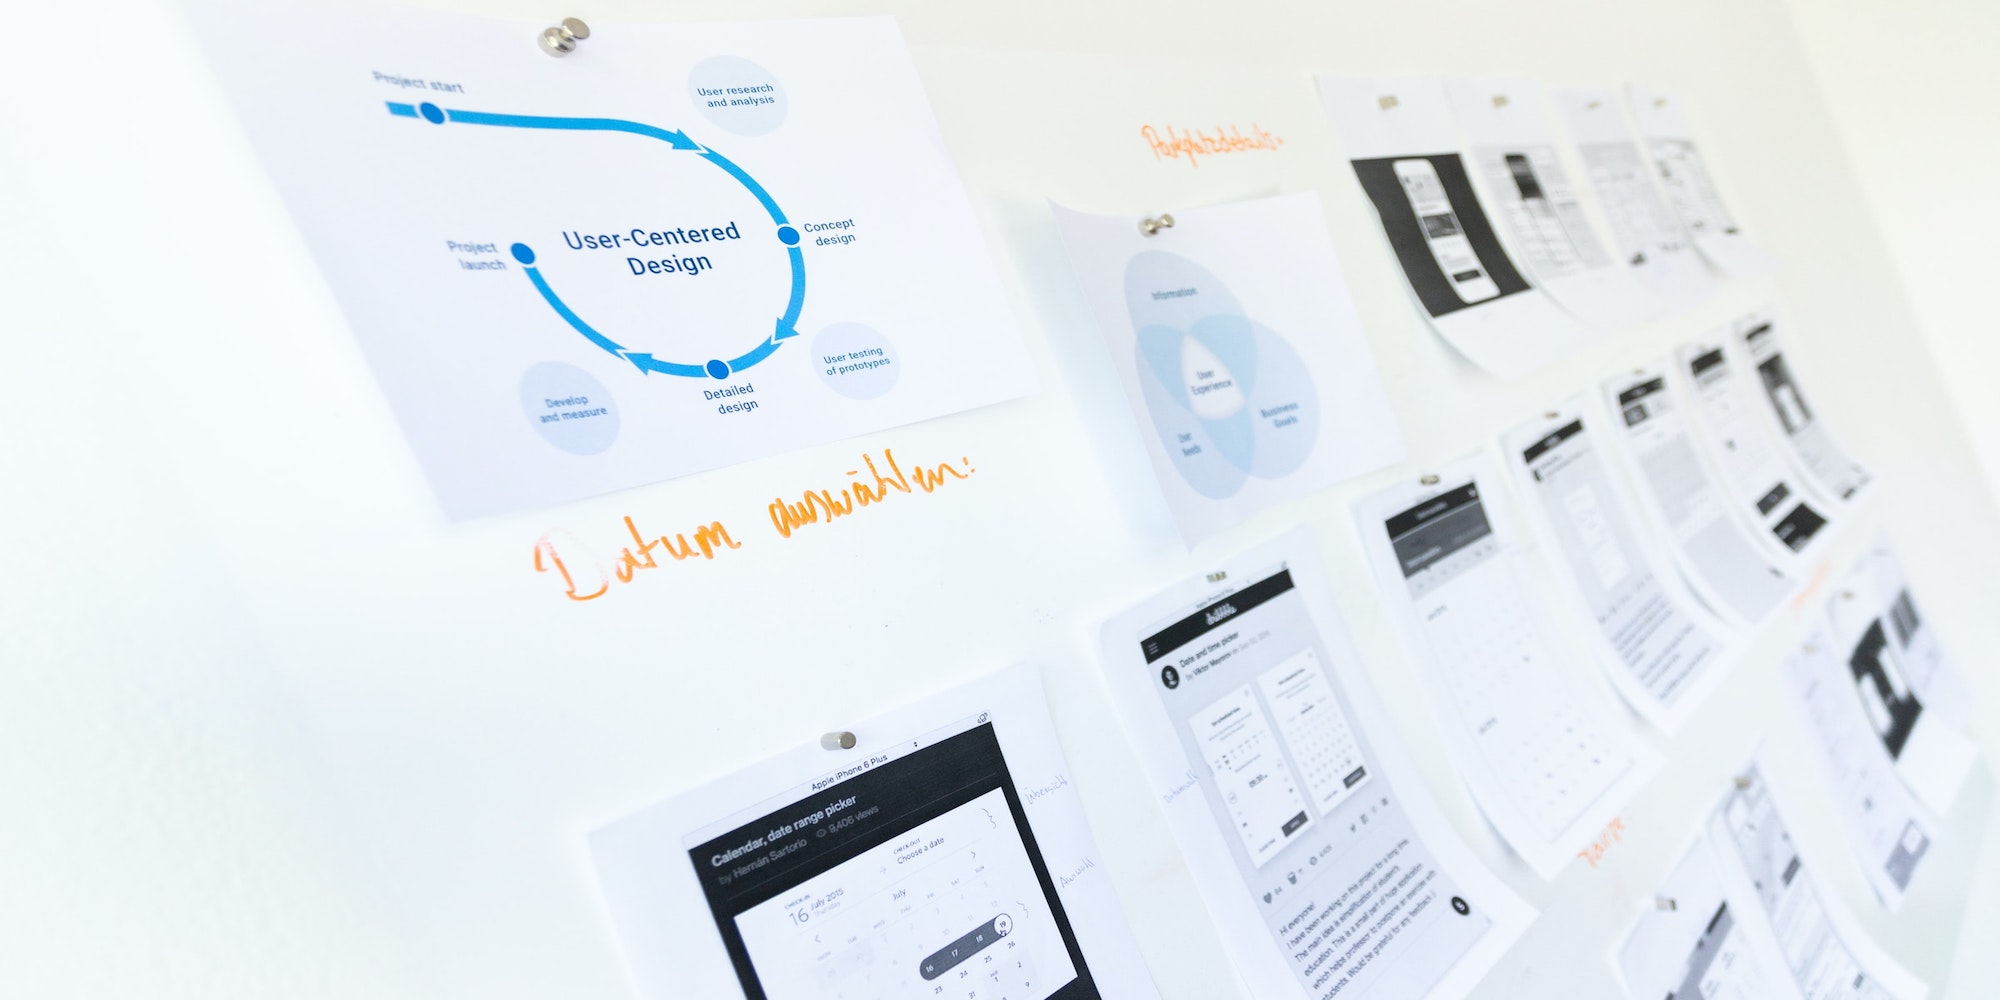 Miro whiteboard: TTT's go-to online collaboration tool